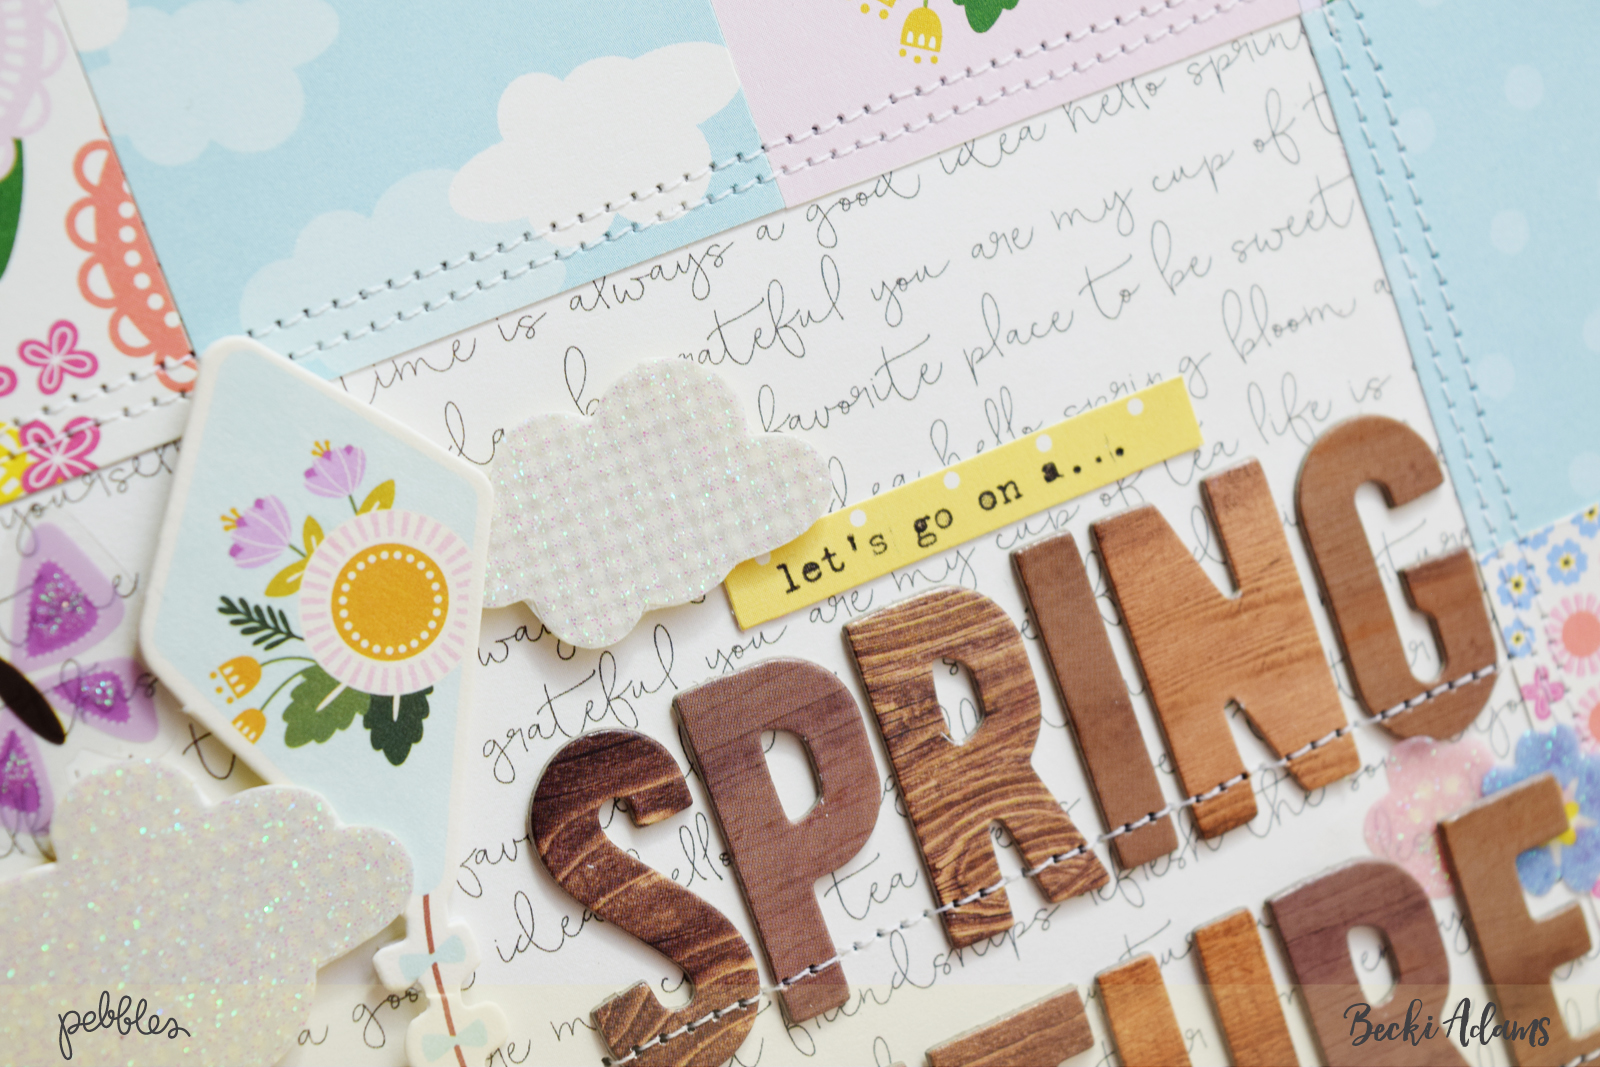 DIY Spring Home Decor created by @jbckadams for @Pebblesinc #DIYSpringHomeDecor #papercrafting #Pebblesinc